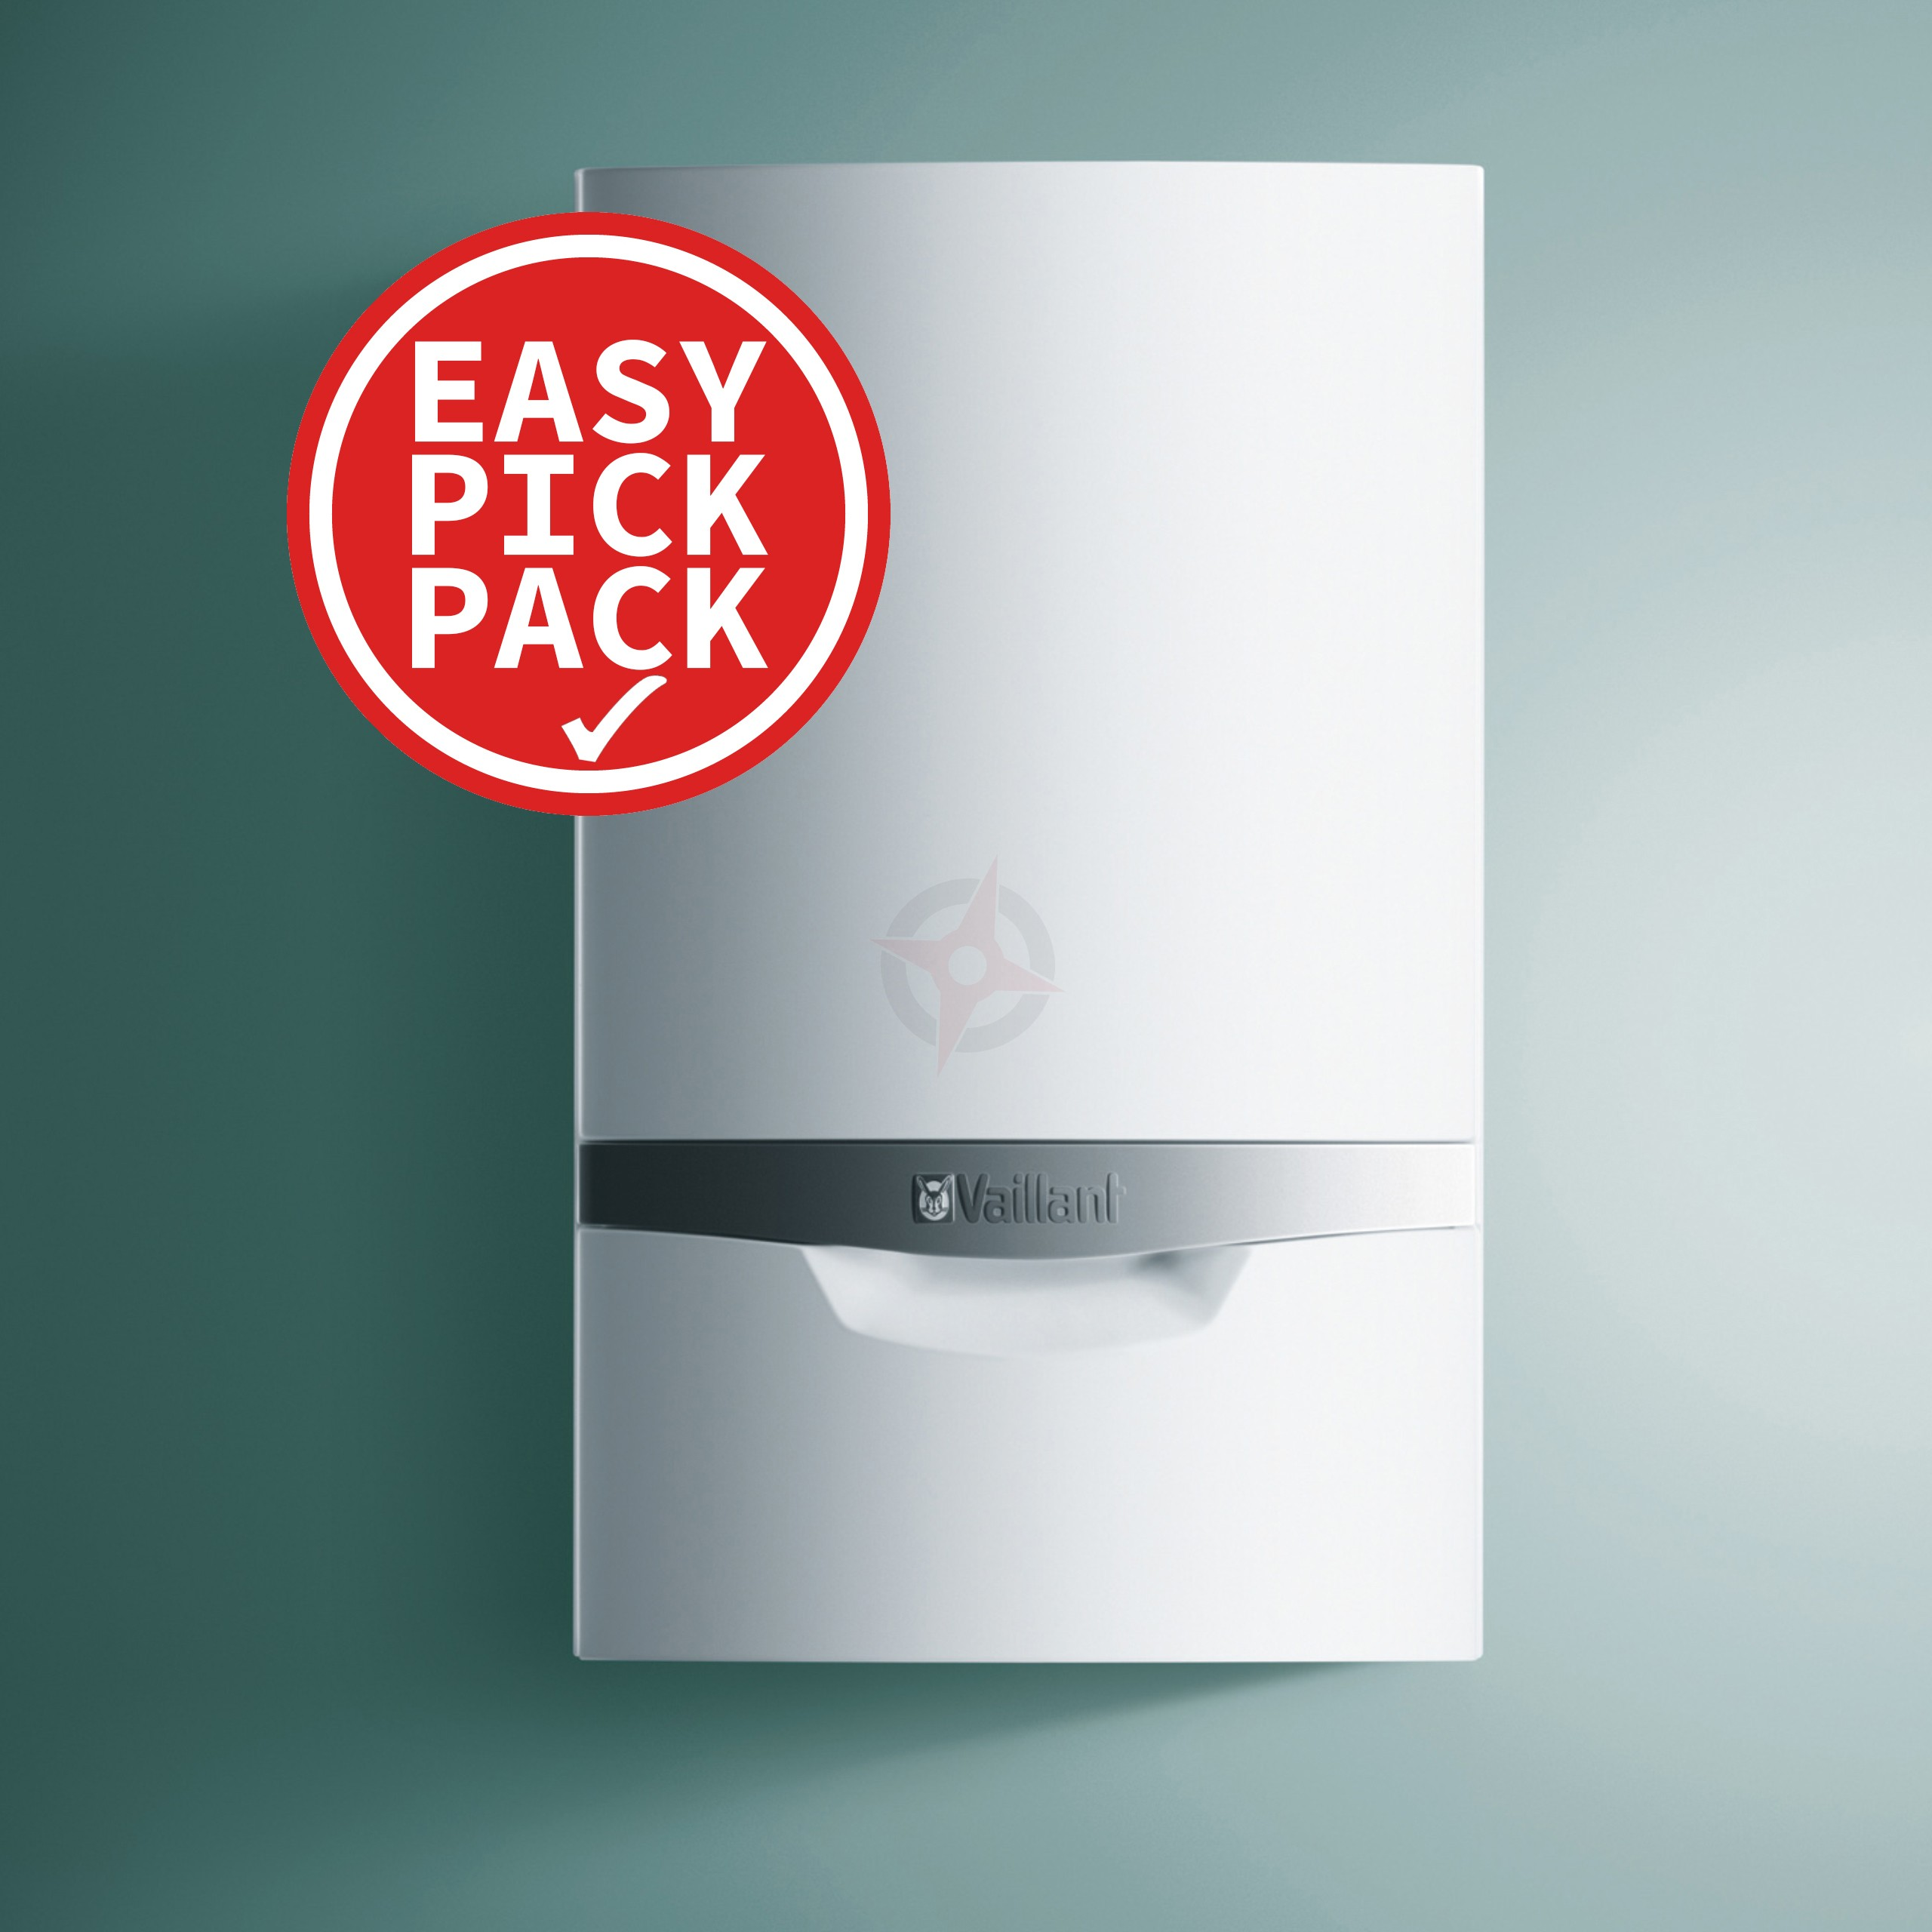 Vaillant ecoTEC Plus 612 (ErP) System Boiler Easy Pick Pack